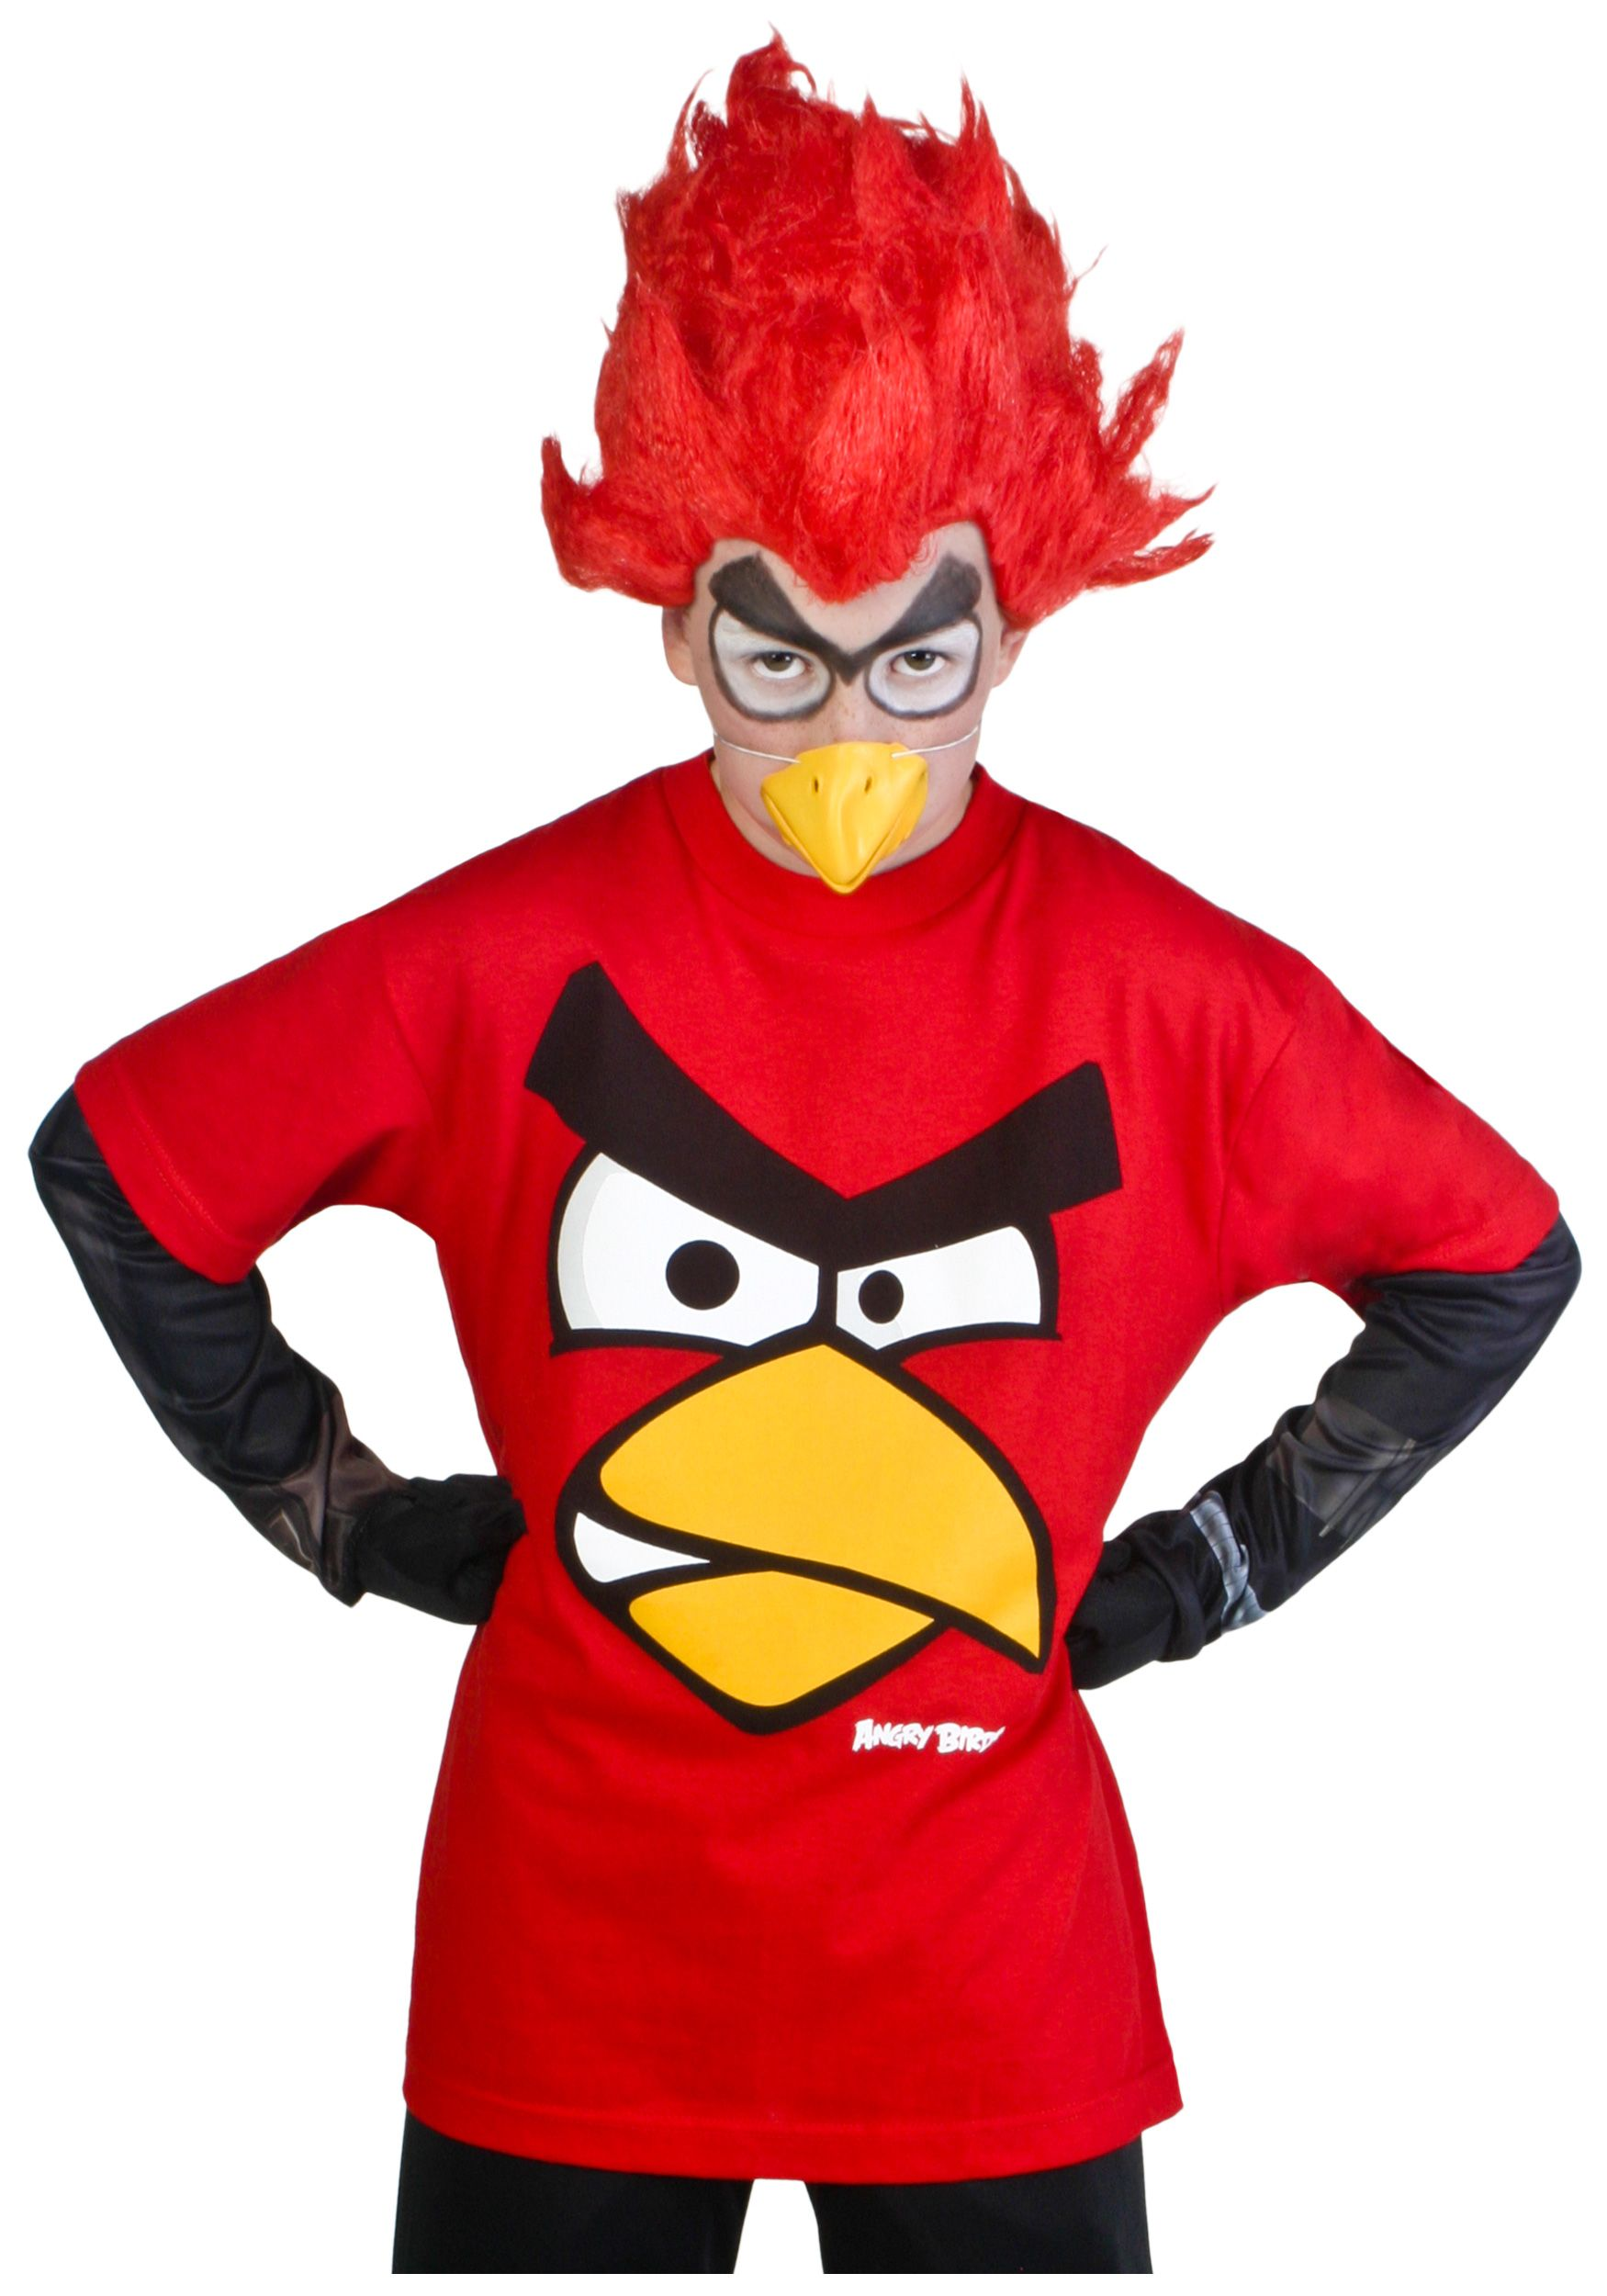 Kids Red Angry Birds Costume T-Shirt | Halloweemn | Pinterest ...